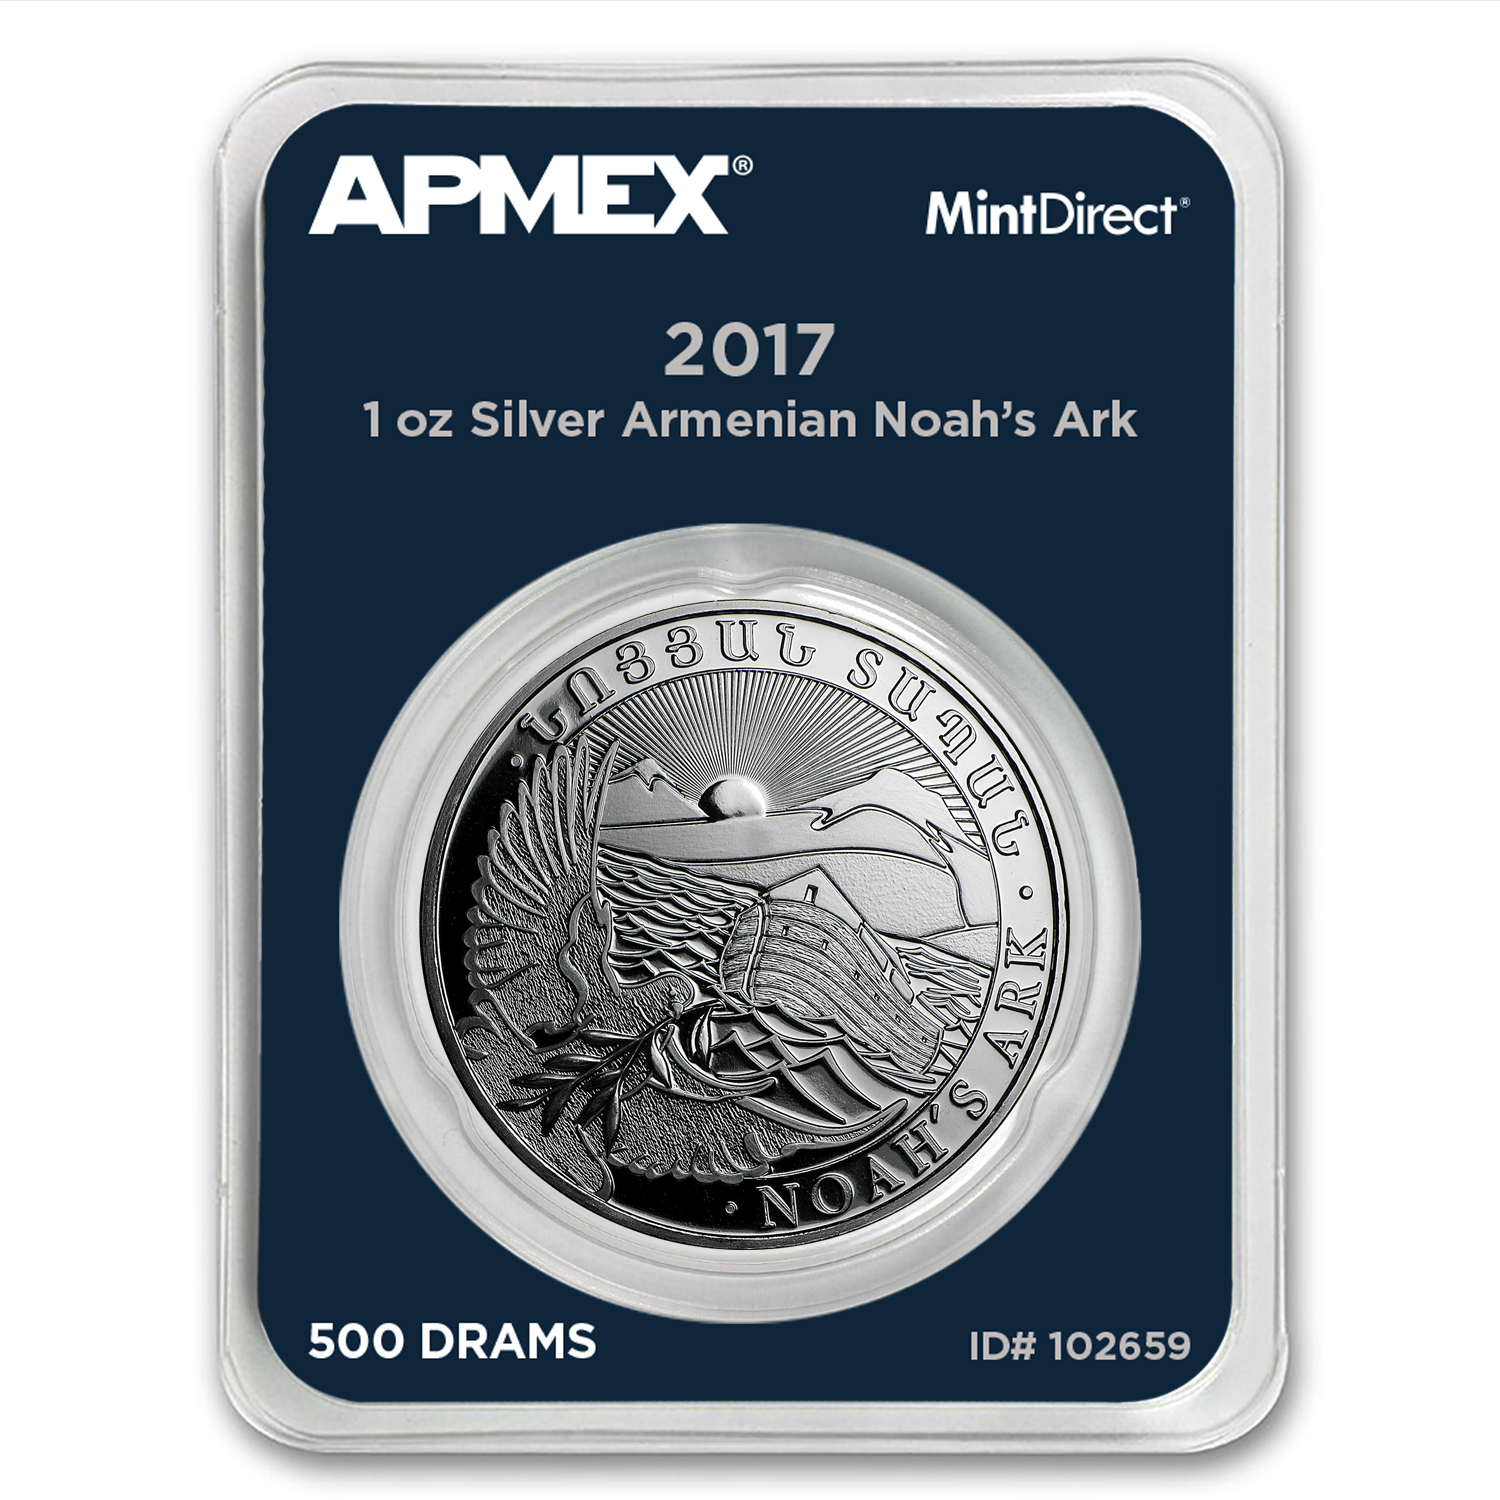 2017 Armenia 1 oz Silver Noah's Ark (MintDirect® Single)